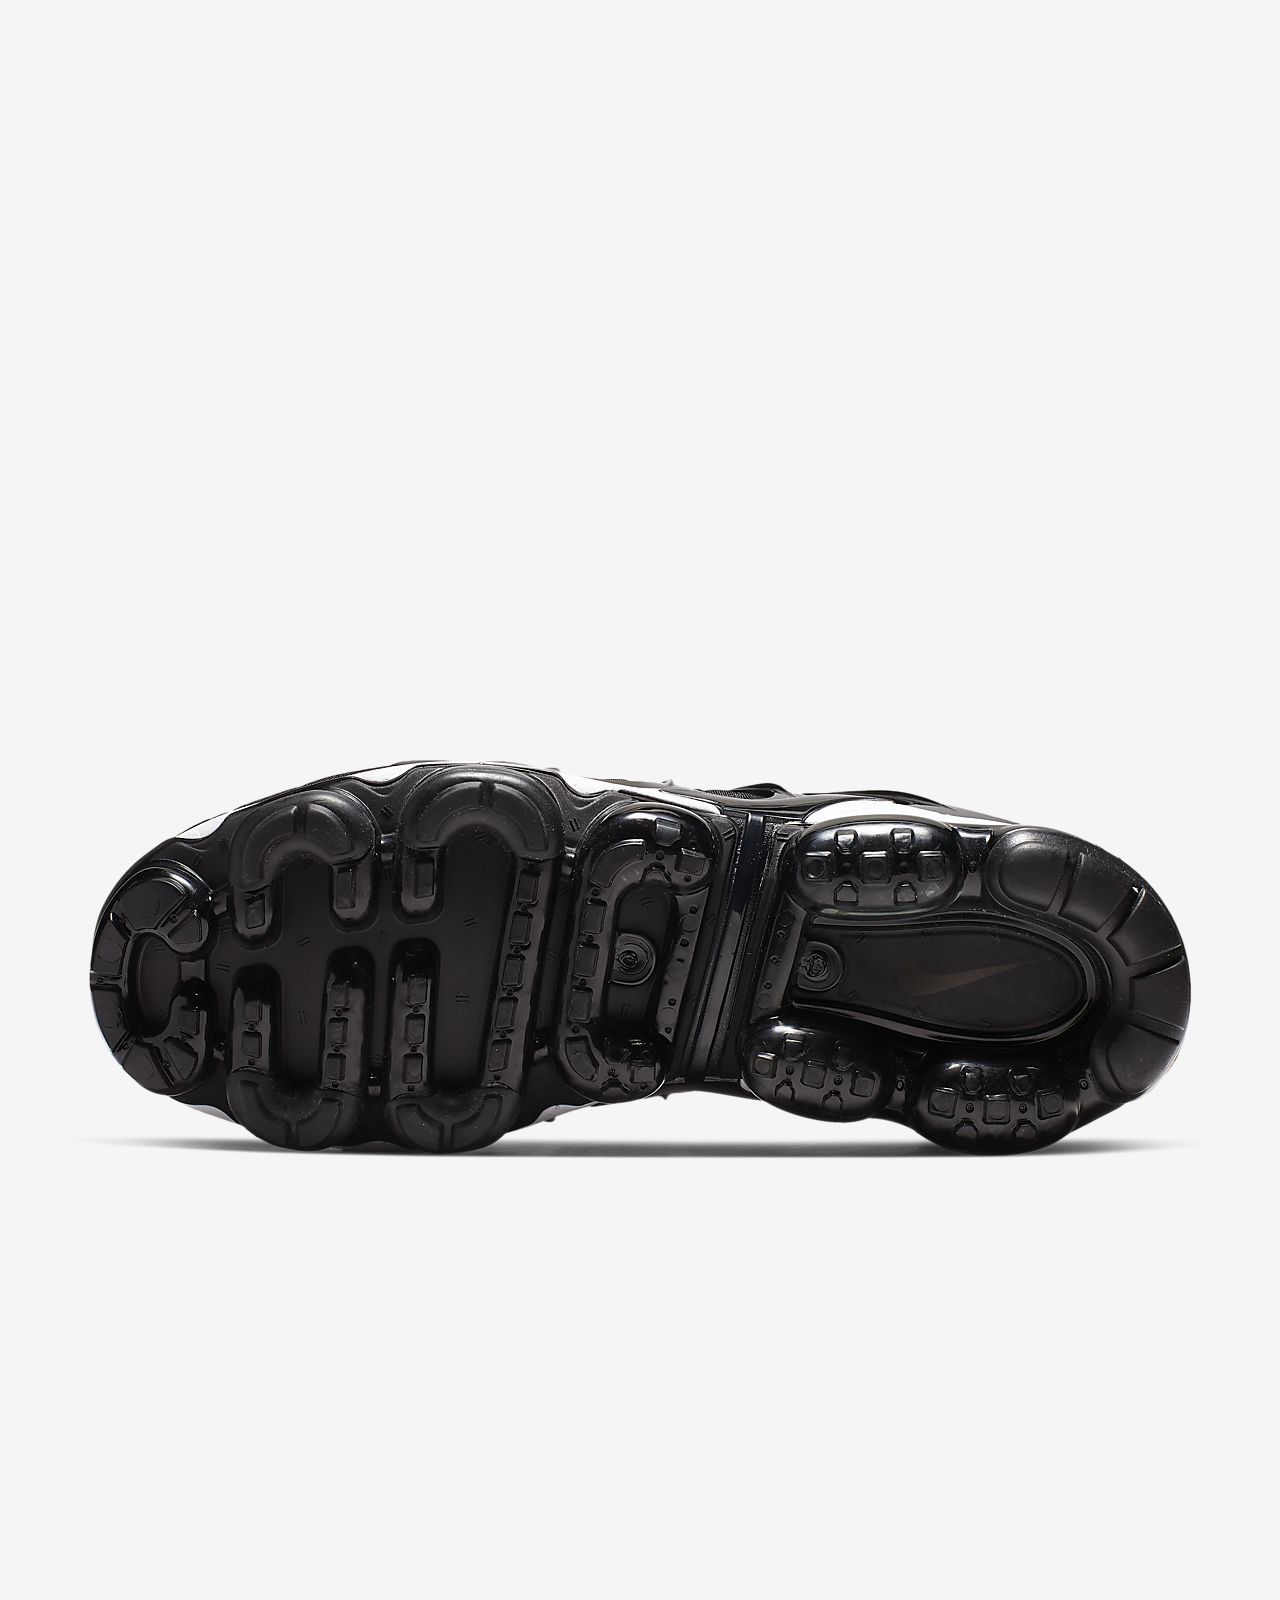 best service 7668a f7224 ... Nike Air VaporMax Plus Mens Shoe